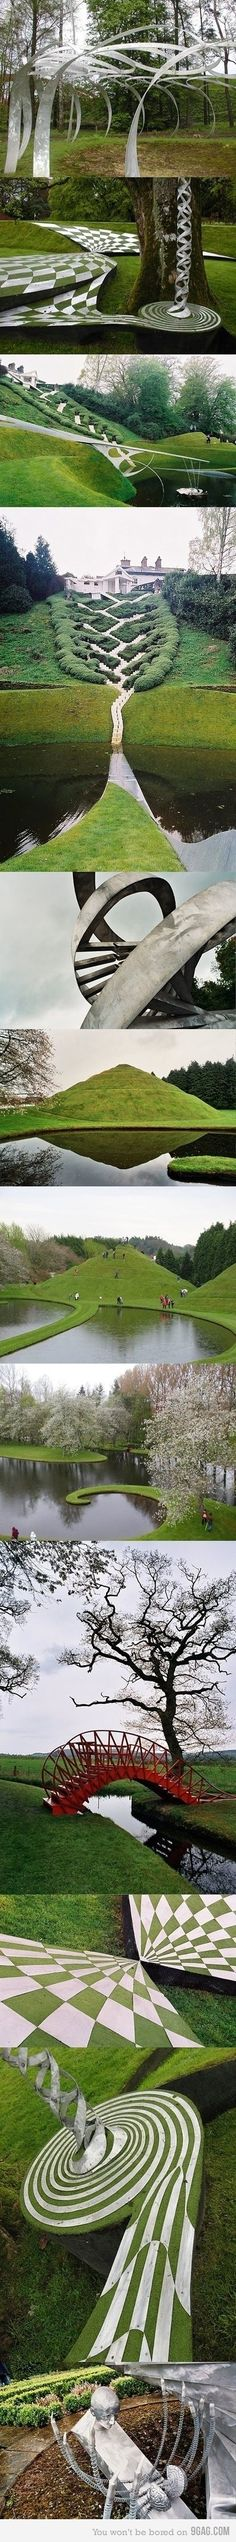 The Garden of Cosmic Speculation Dumfries Scotland designed by